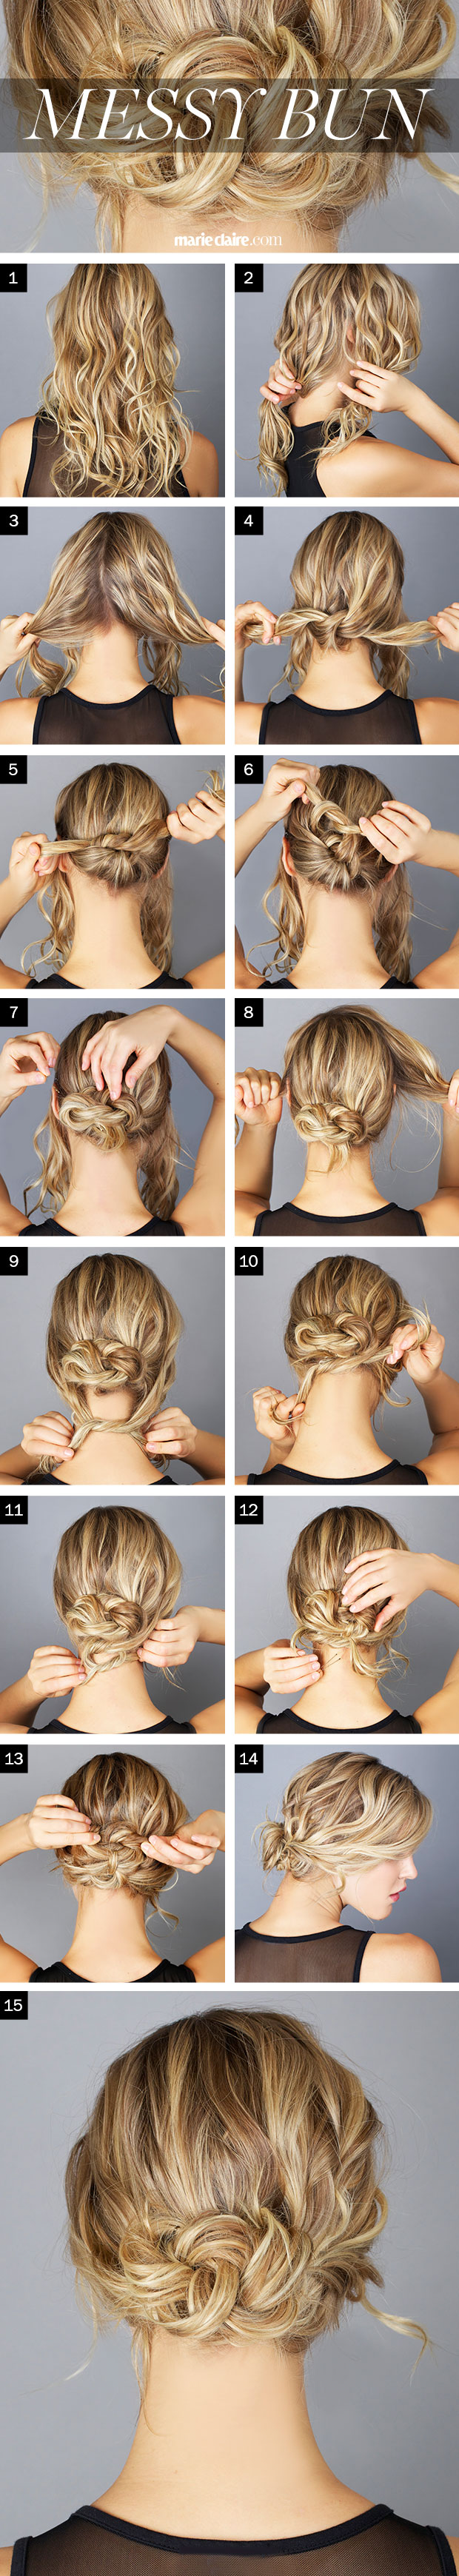 Make Your First Messy Bun